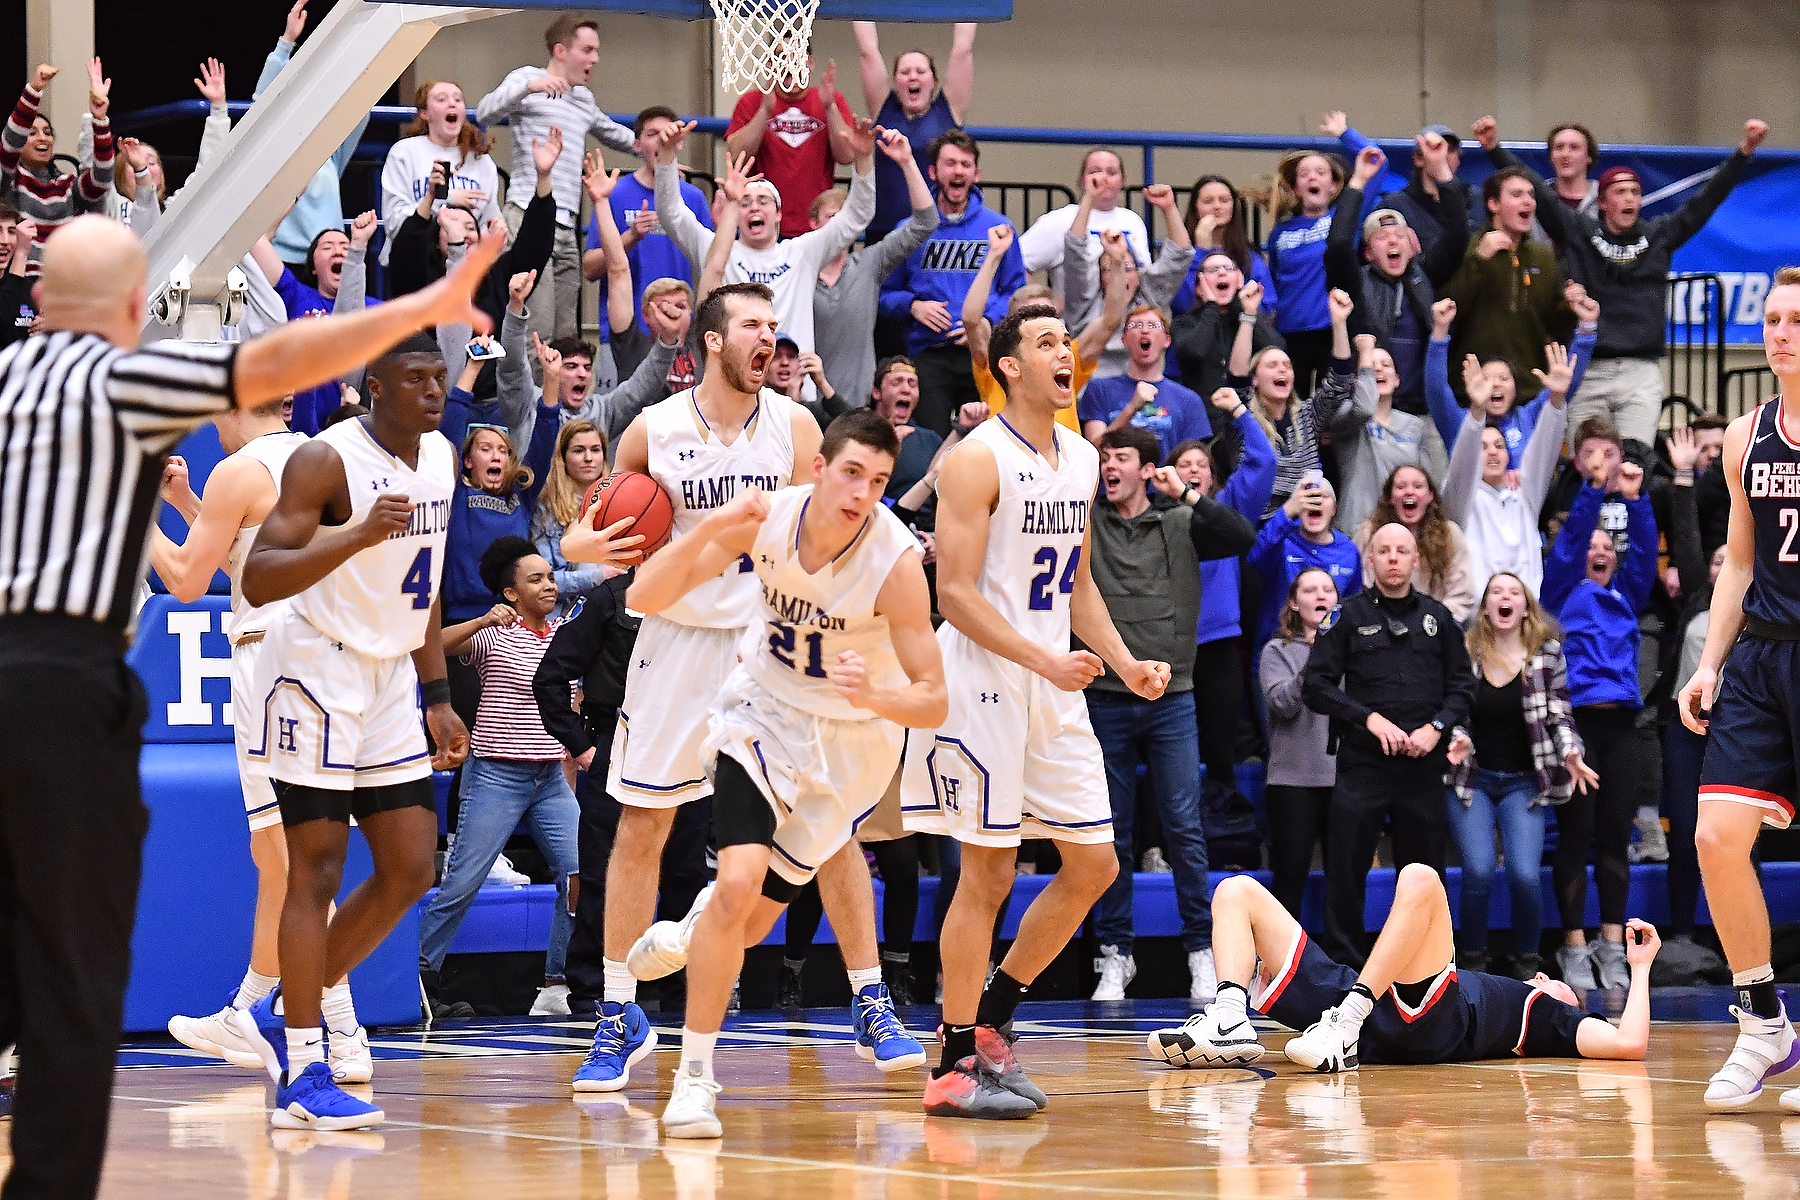 Nick Osarenren '22, Andrew Groll '19, Spencer Kendall '21 and Kena Gilmour '20 (left to right) celebrate the Continentals' 72-70 win over Penn State Behrend in the first round of the 2019 NCAA Division III Men's Basketball Championship on Friday night at Hamilton (Josh McKee photo).